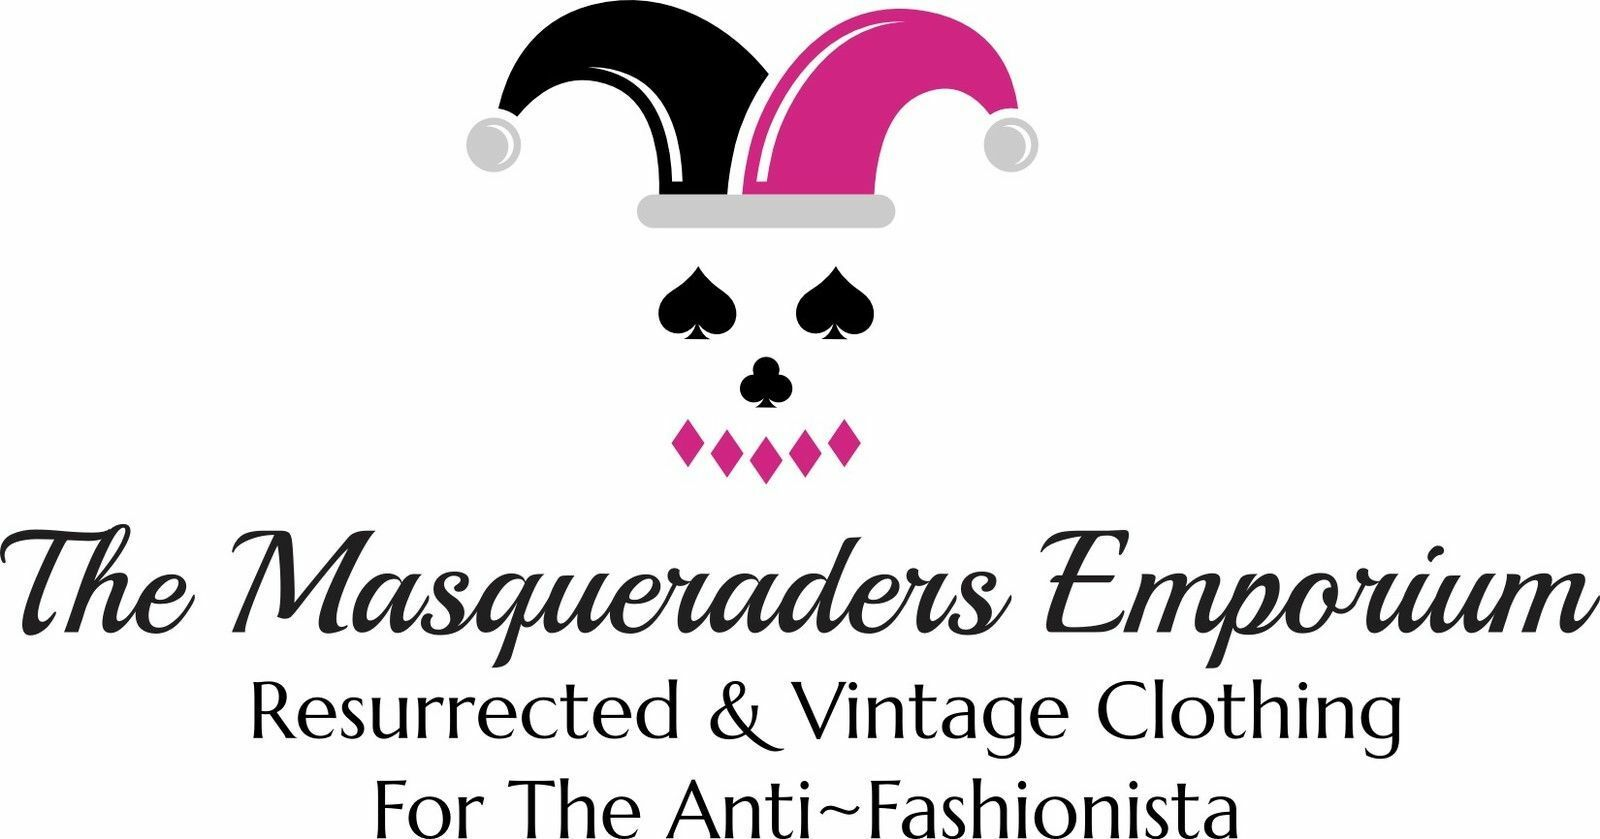 The Masqueraders Emporium